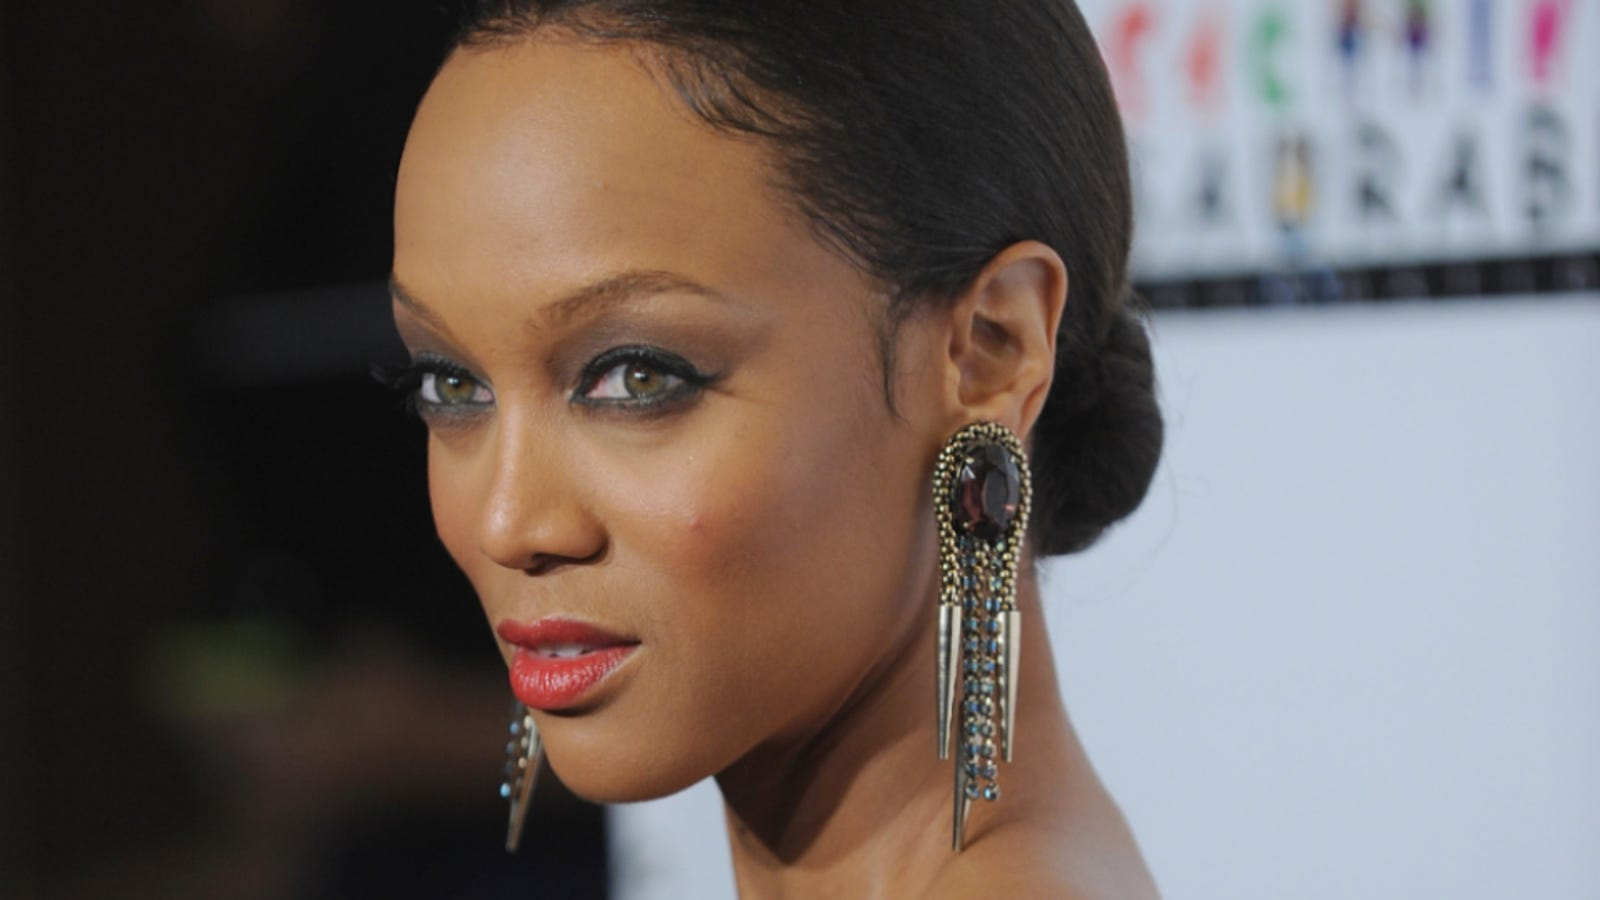 Tyra Banks Needs to Stop Lying About Going to Harvard